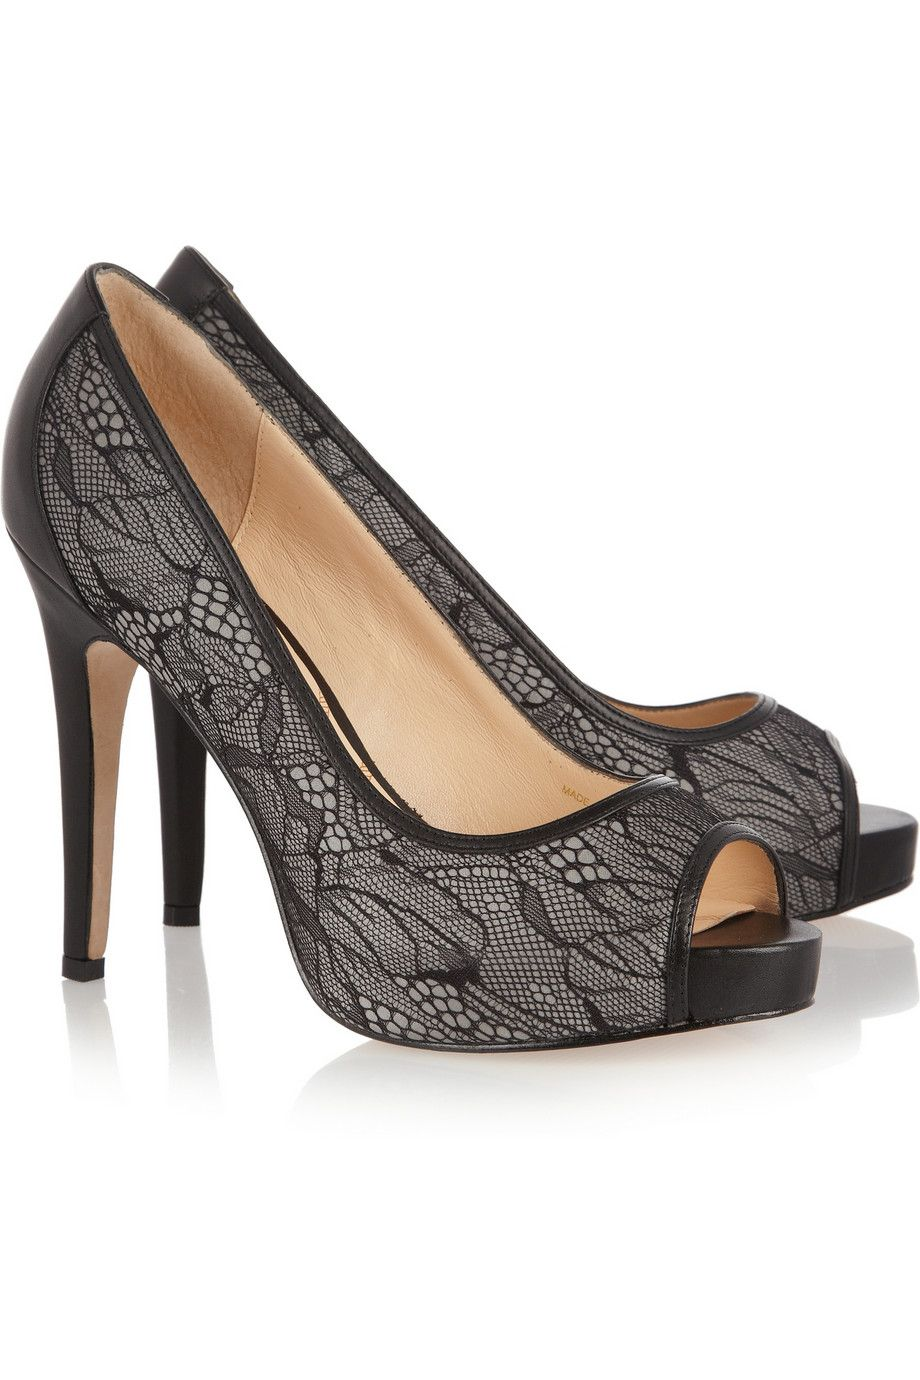 cc8f30e622e7 Tanzanite lace and leather pumps by Lucy Choi